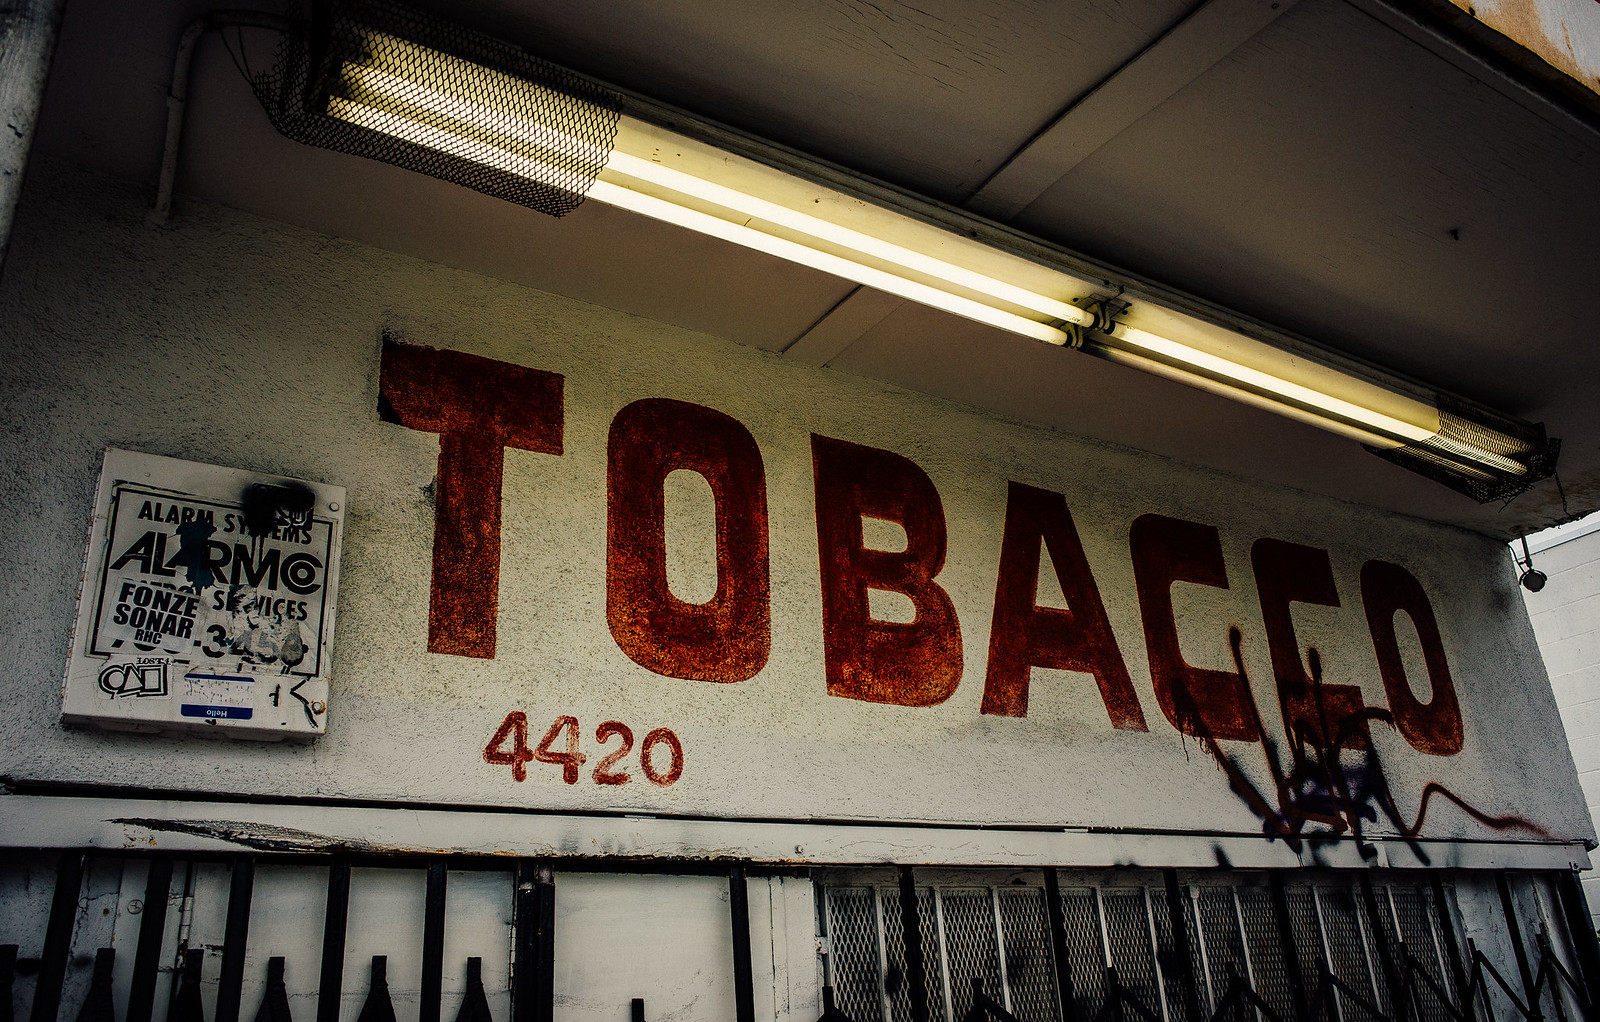 Tobacco | by michaelj1998